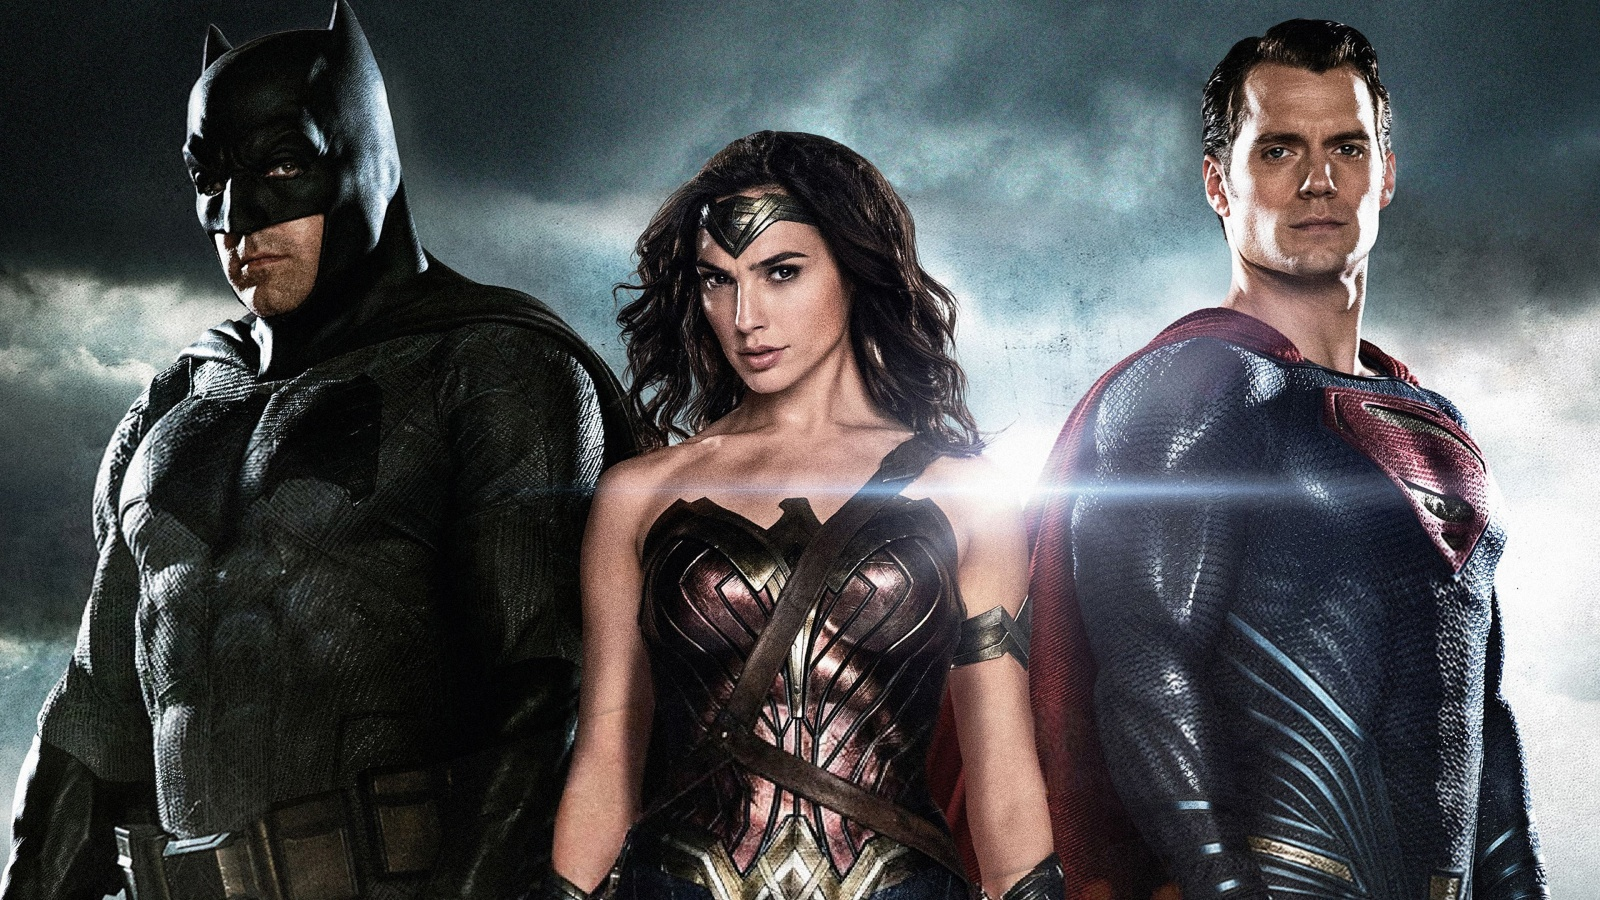 'Batman v Superman': What Worked, What Needs Improvement